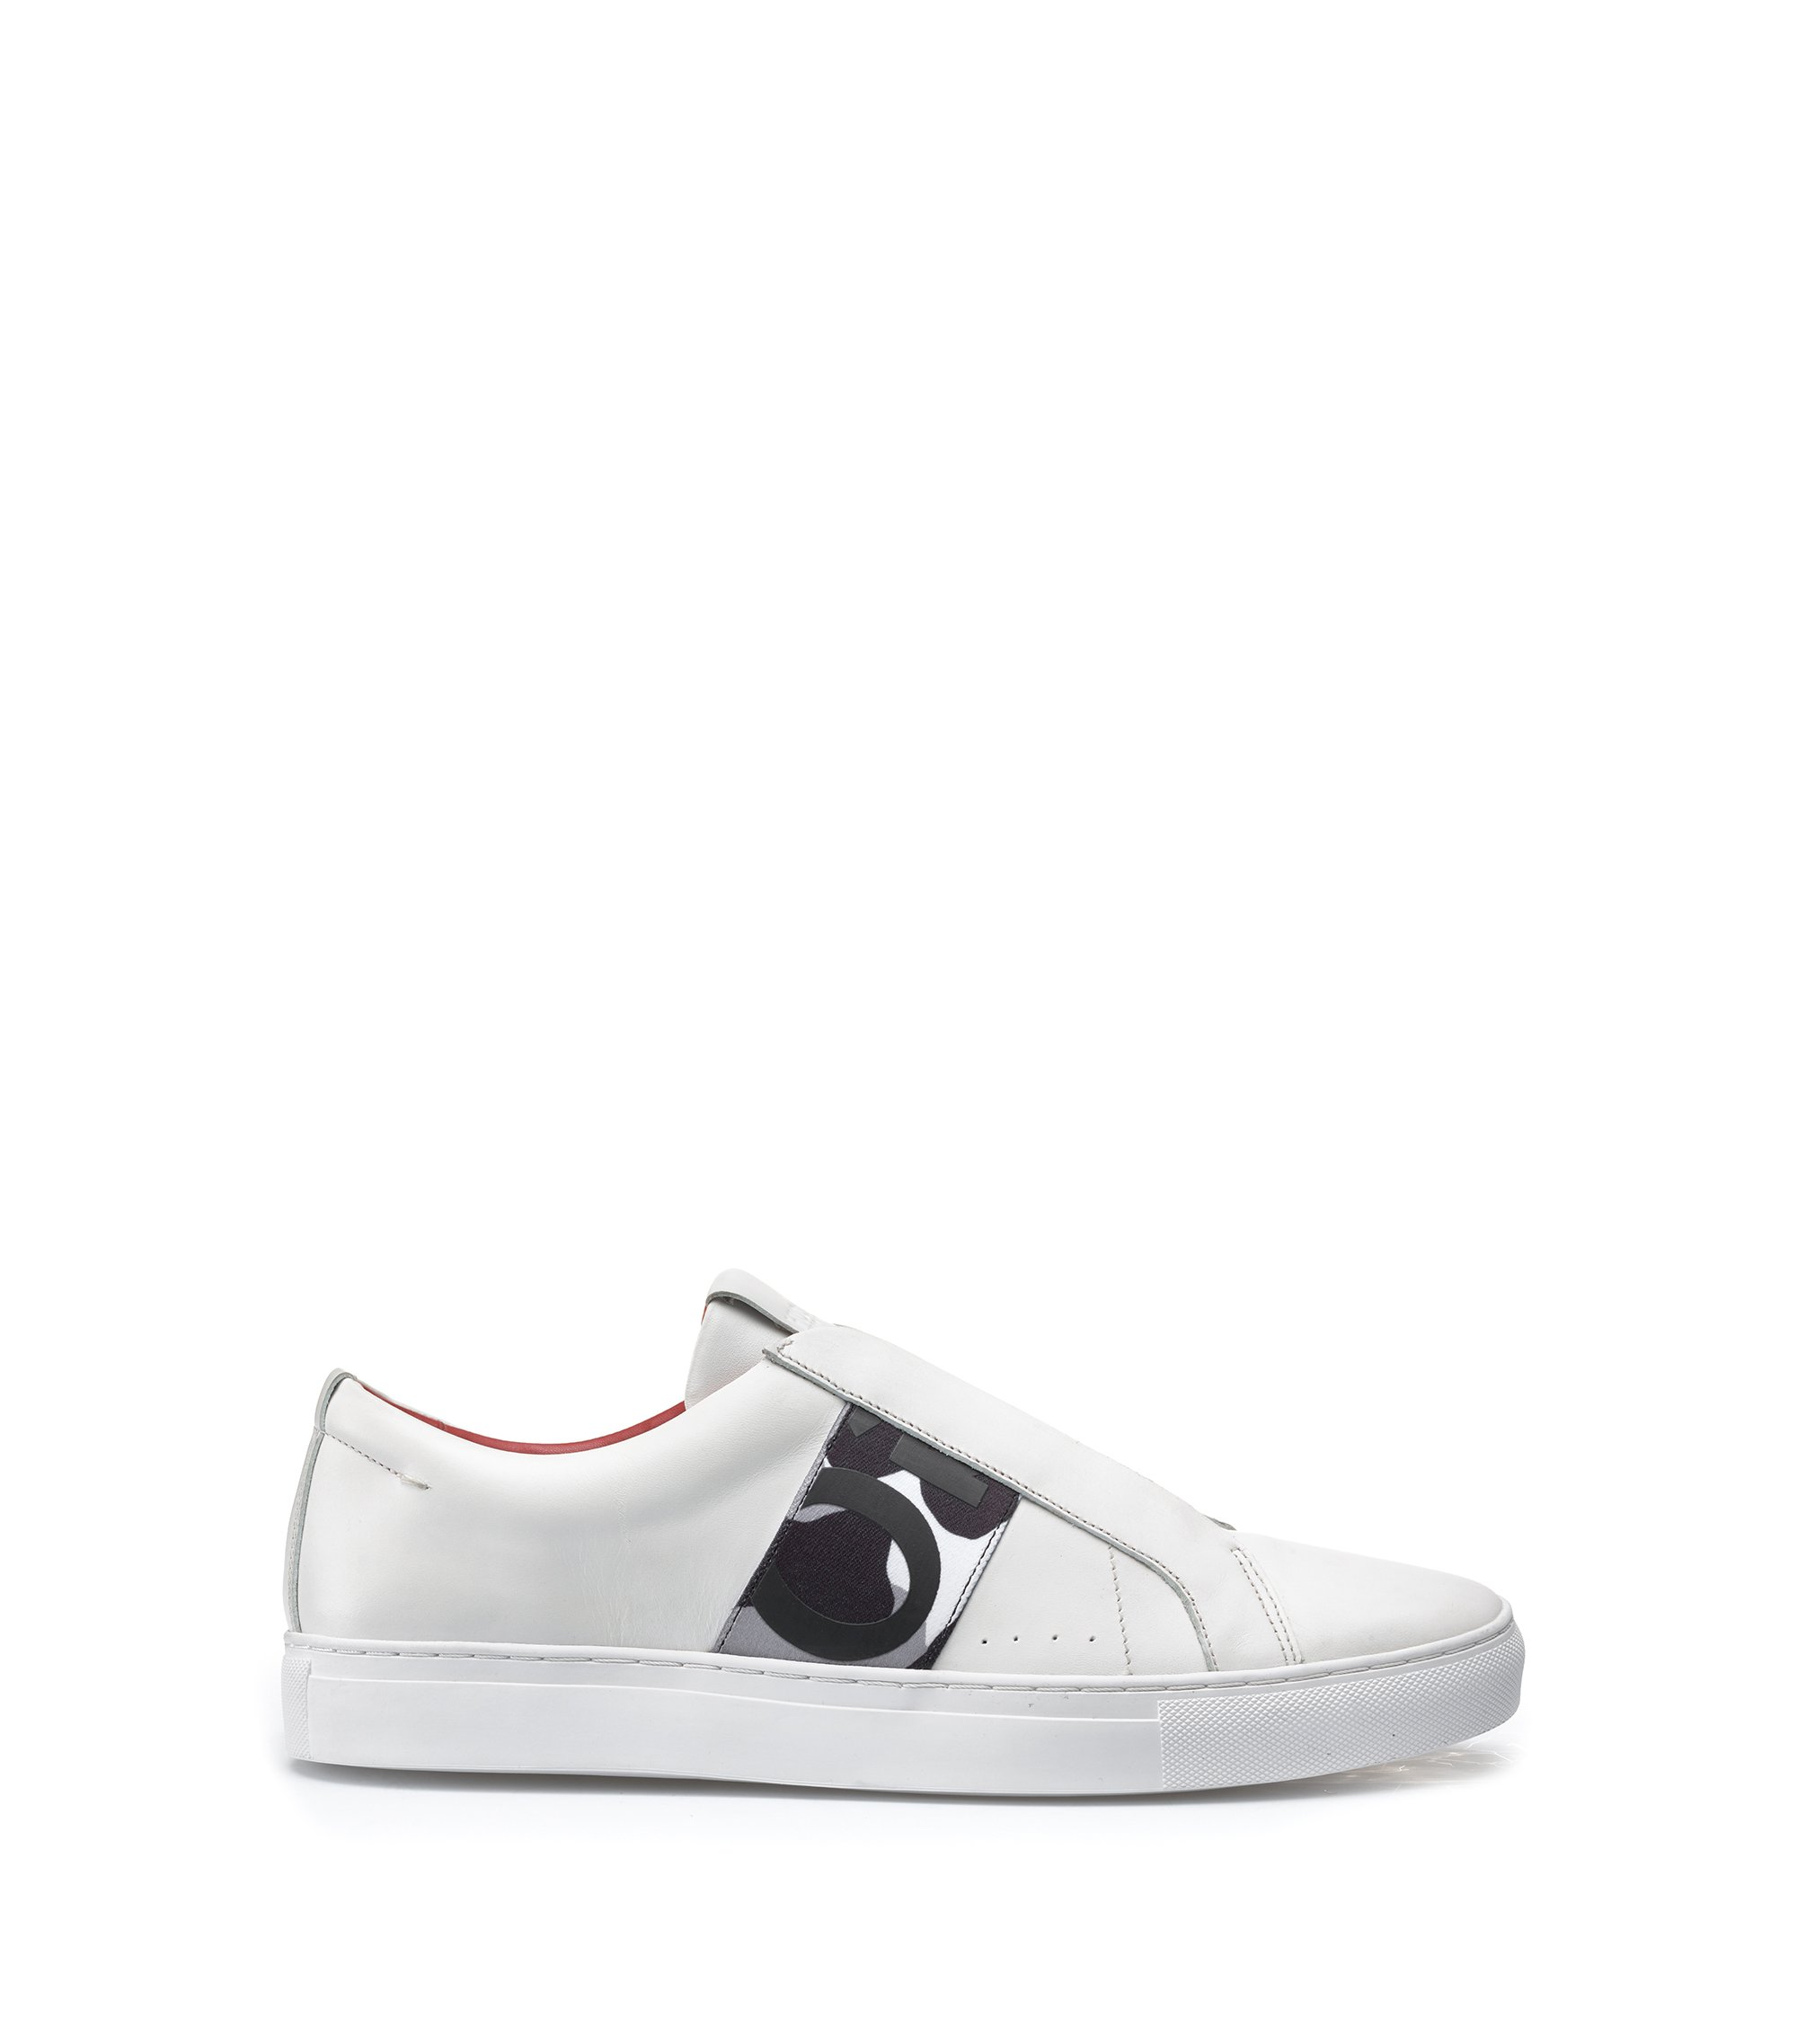 Slip-on trainers in calf leather with elastic trim, Wit